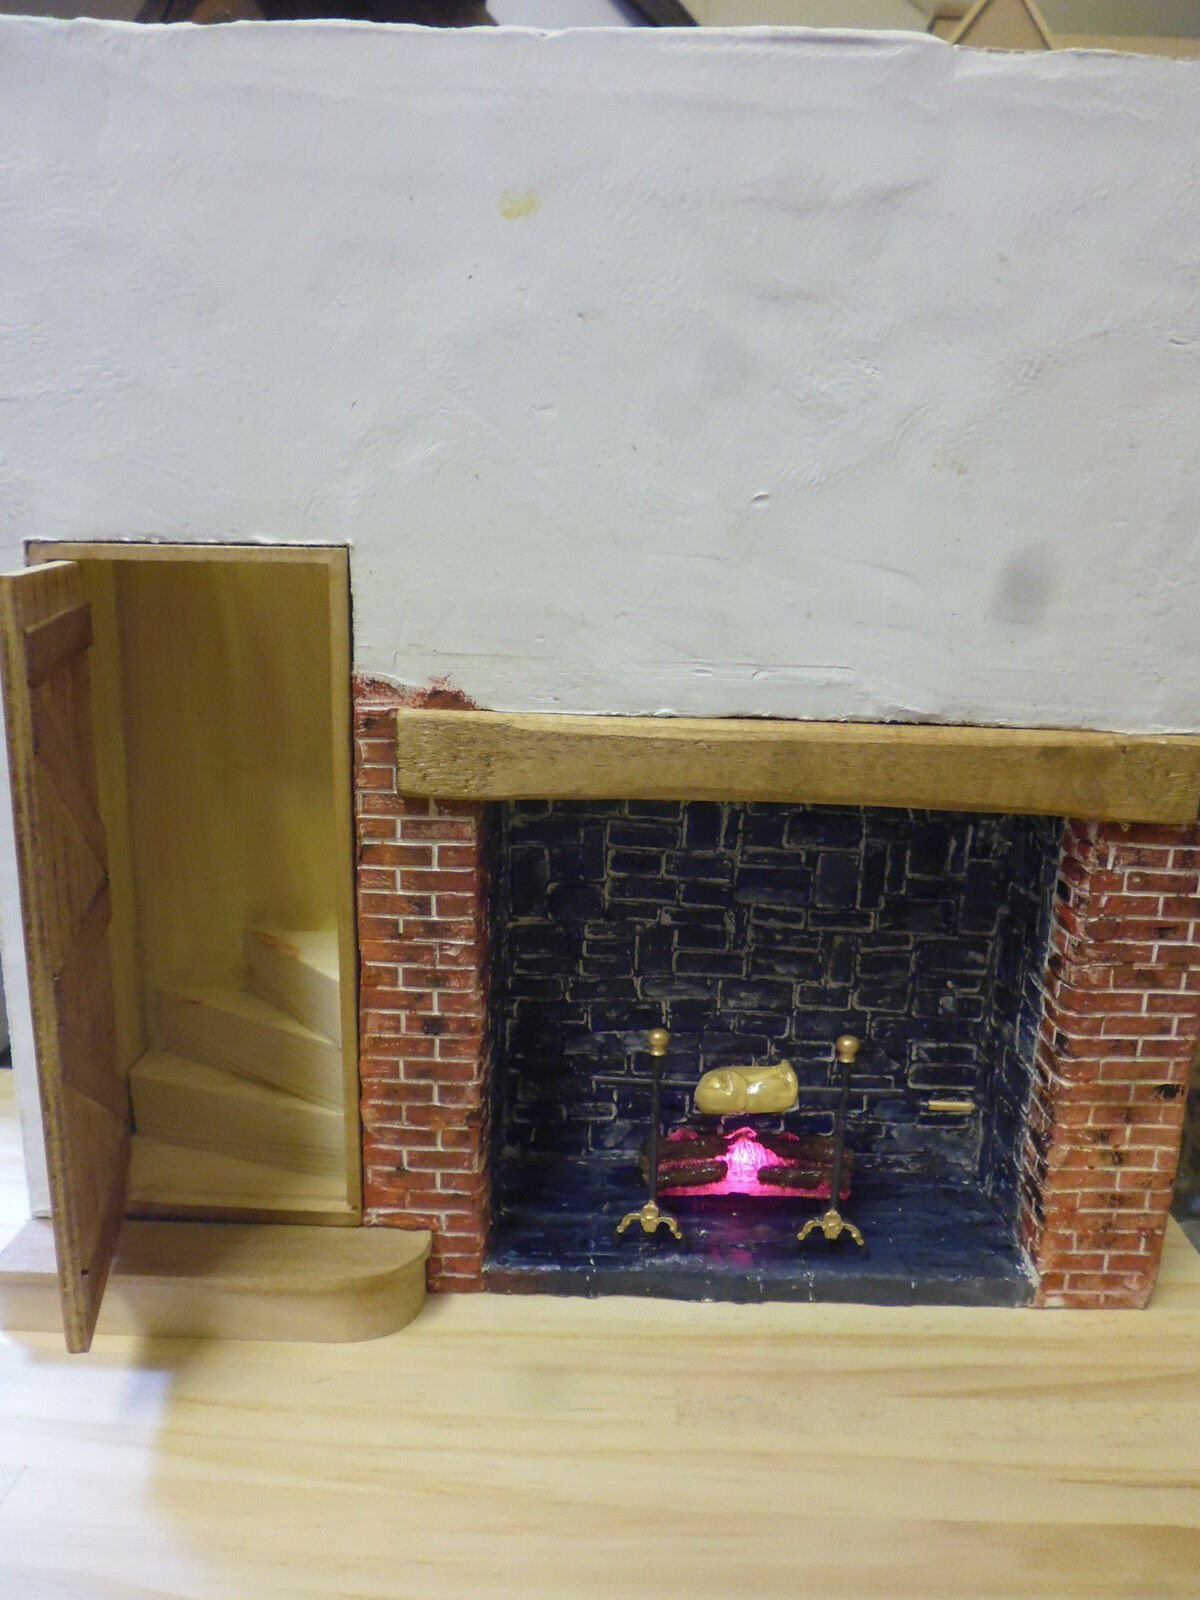 1 12 Dolls haus  Fire place surround Log Fire with Spit Roast   Lichts Up